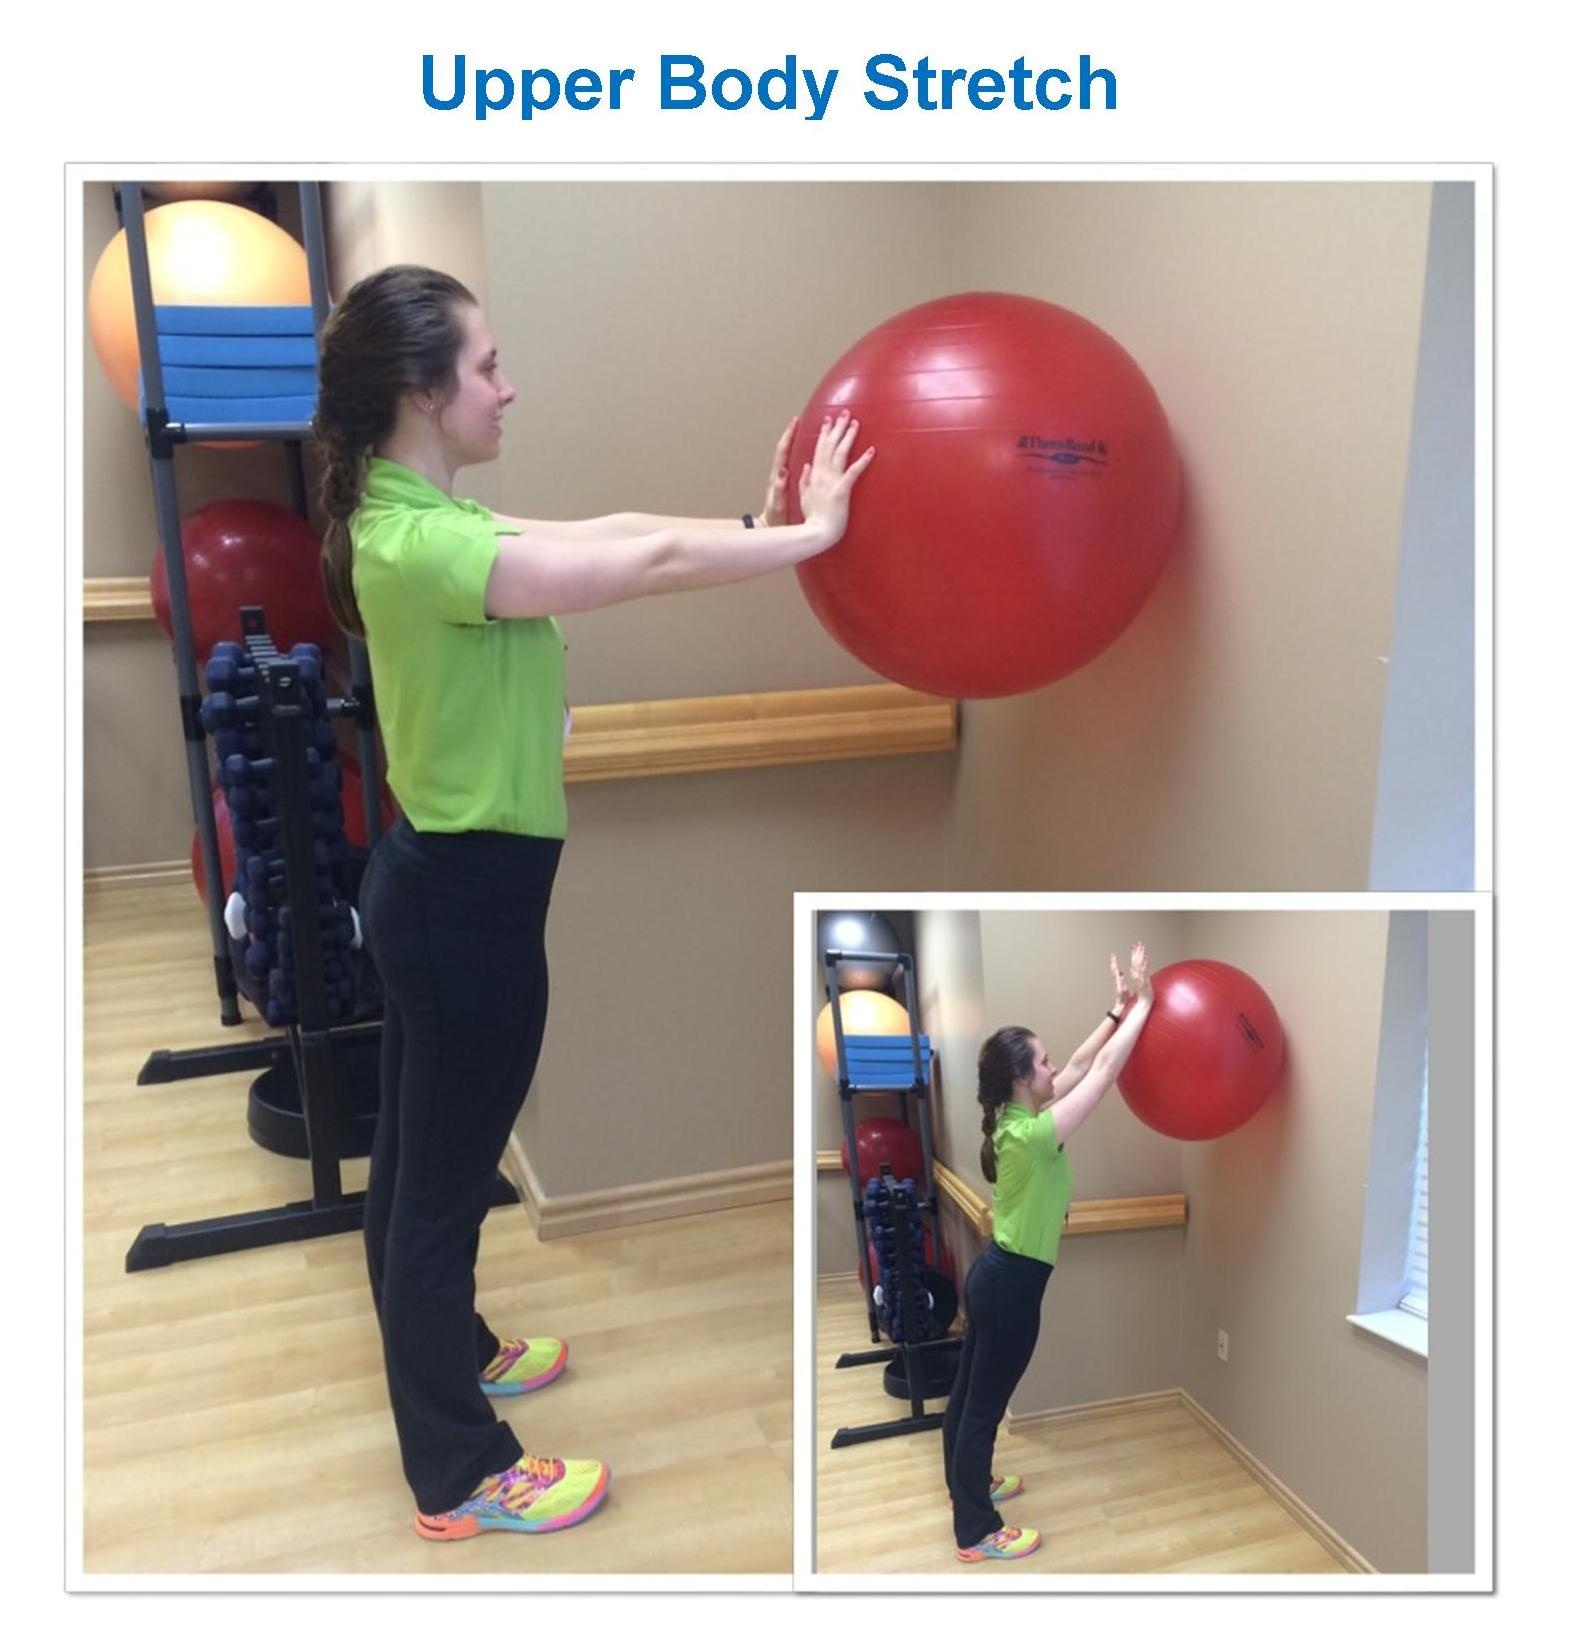 Upper body stretch